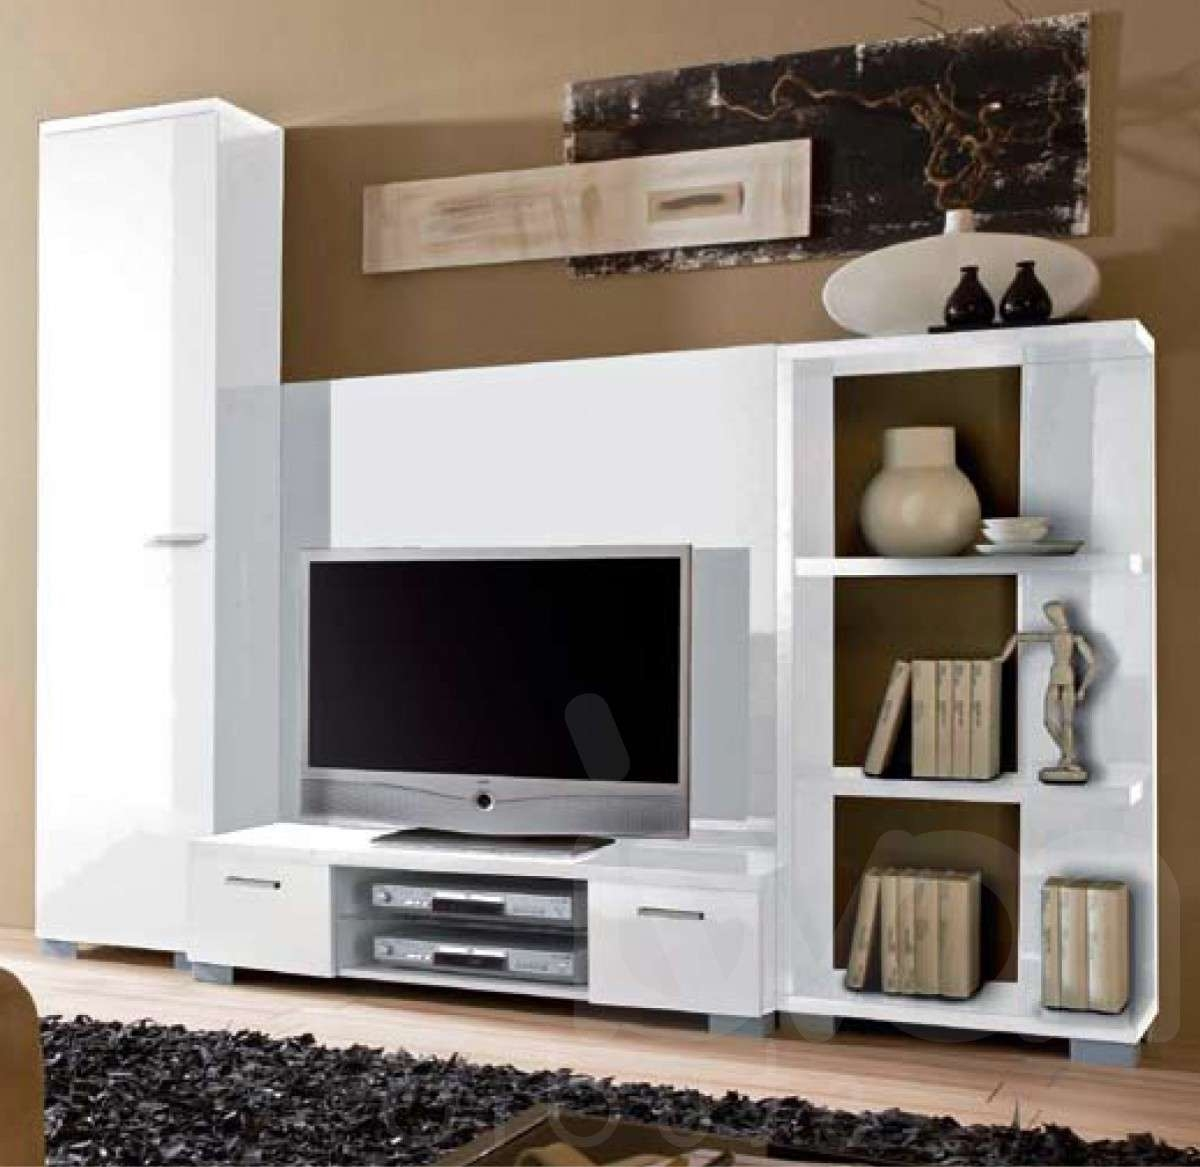 Modern Tv Cabinets And Wall Units – Wall Units Design Ideas Throughout Tv Cabinets With Storage (View 10 of 20)